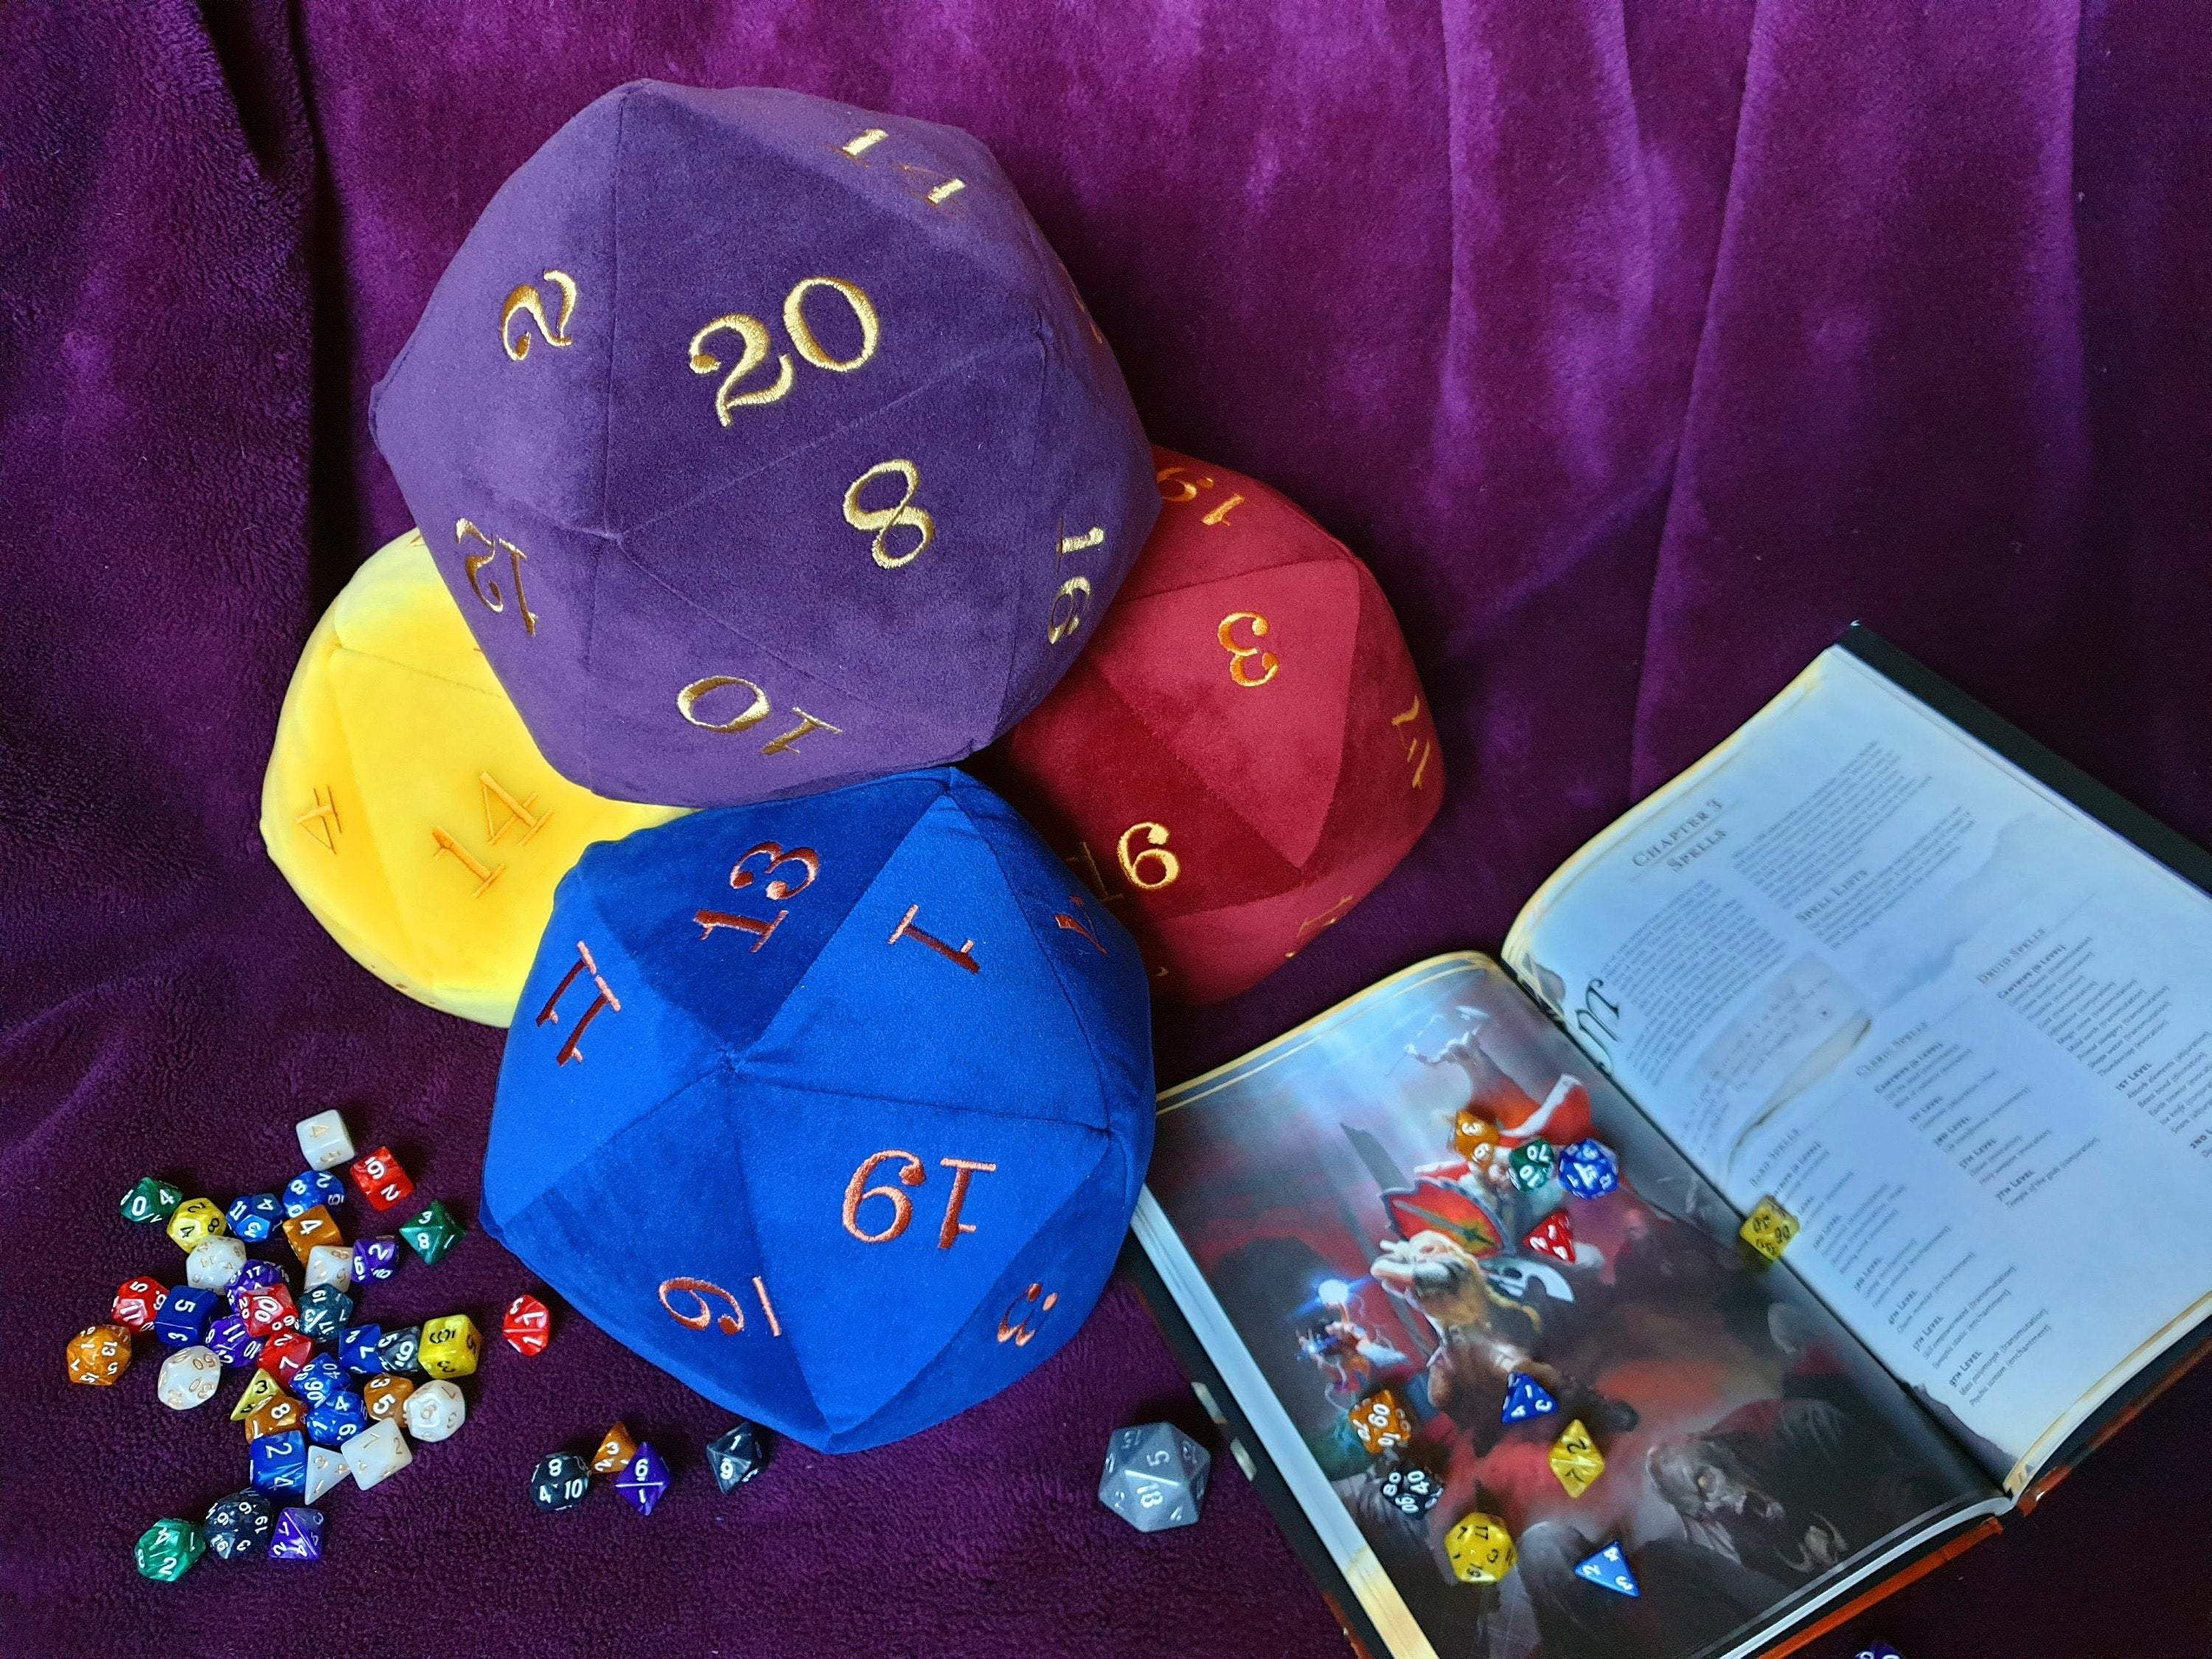 Plushie Purple Giant D20 made up in a Deluxe Velvet in a Deep Grape Purple Colour and Machine Embroidered with Metallic Gold Numbers